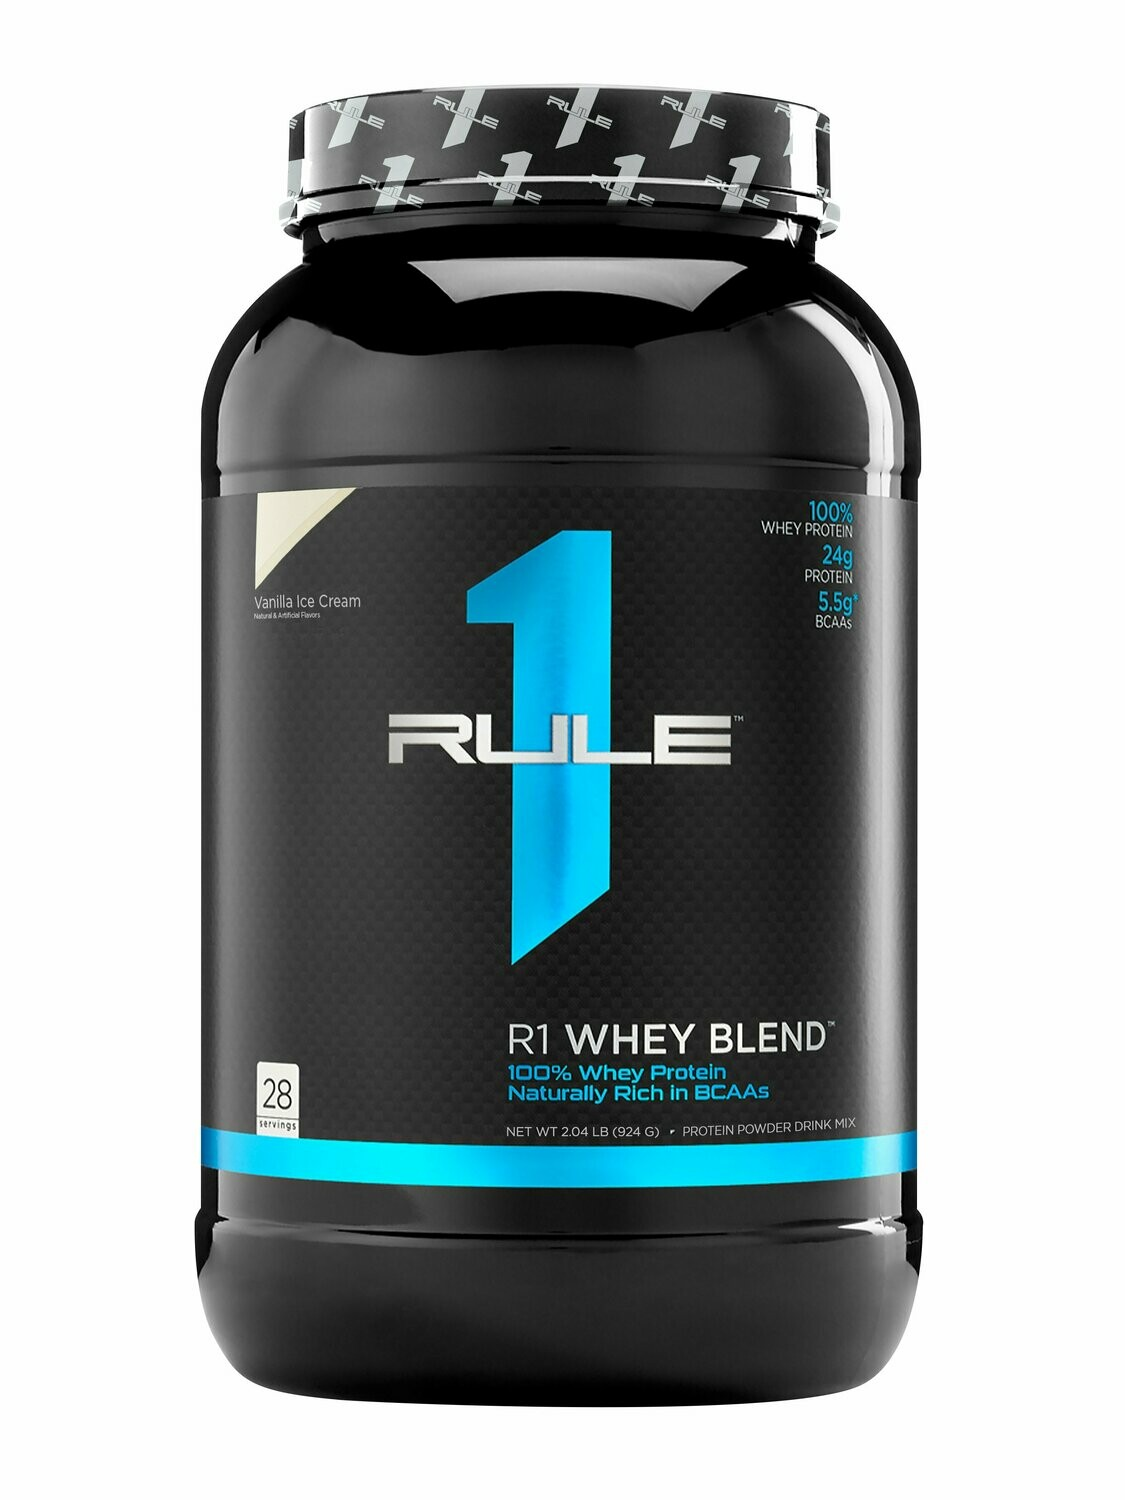 Rule 1 100% Whey Protein Blend